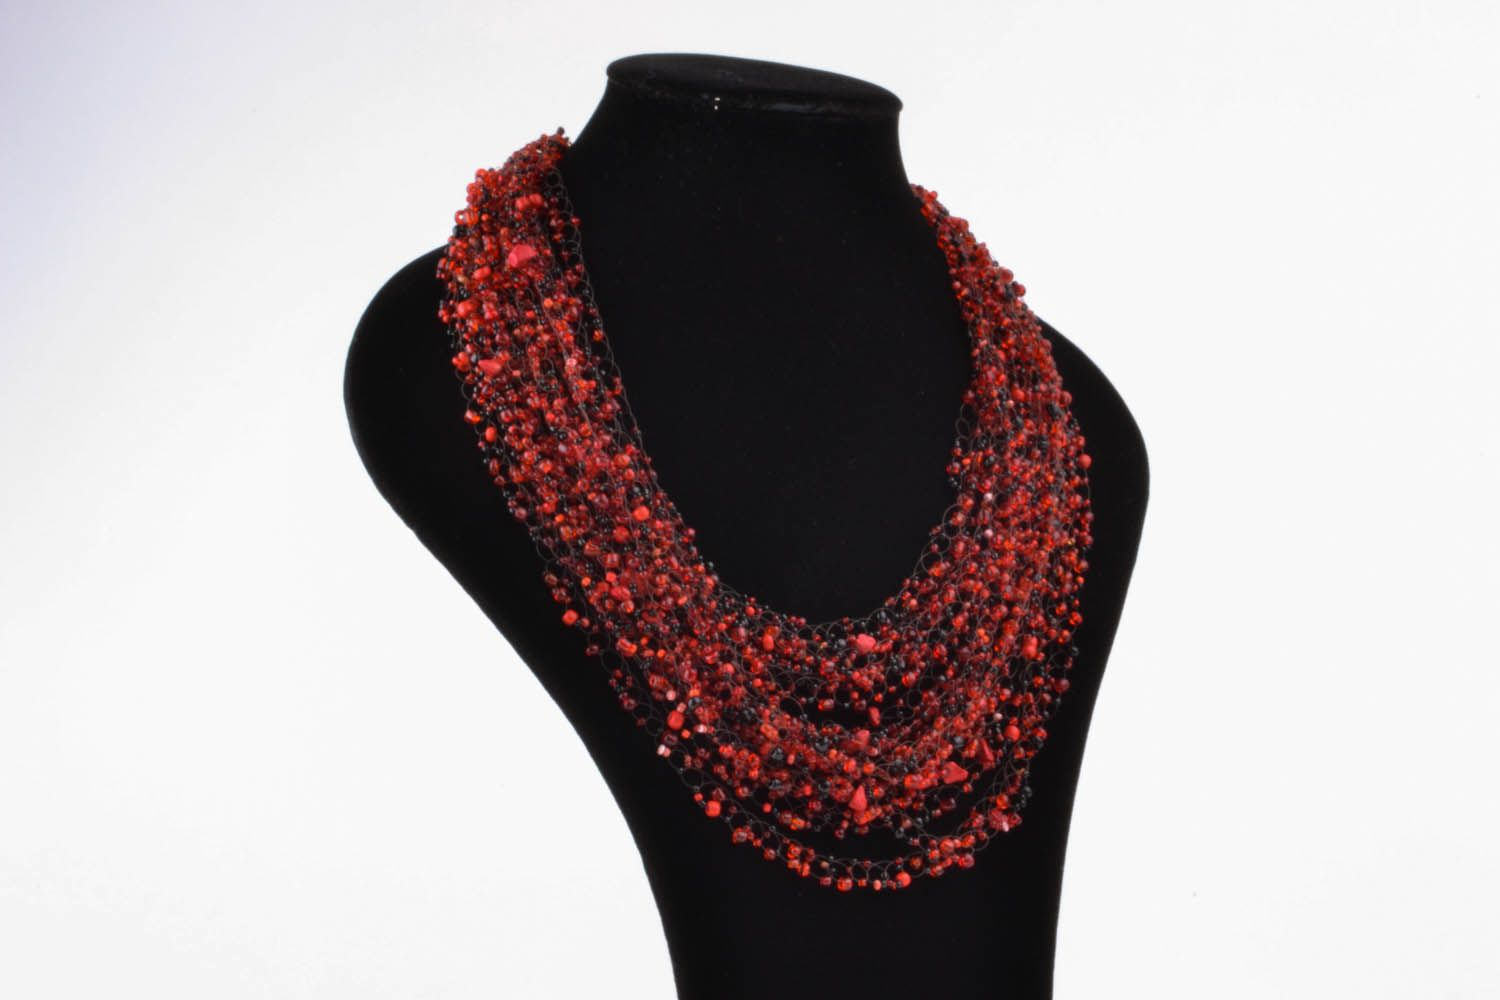 Red and black necklace made of beads and natural stones photo 1